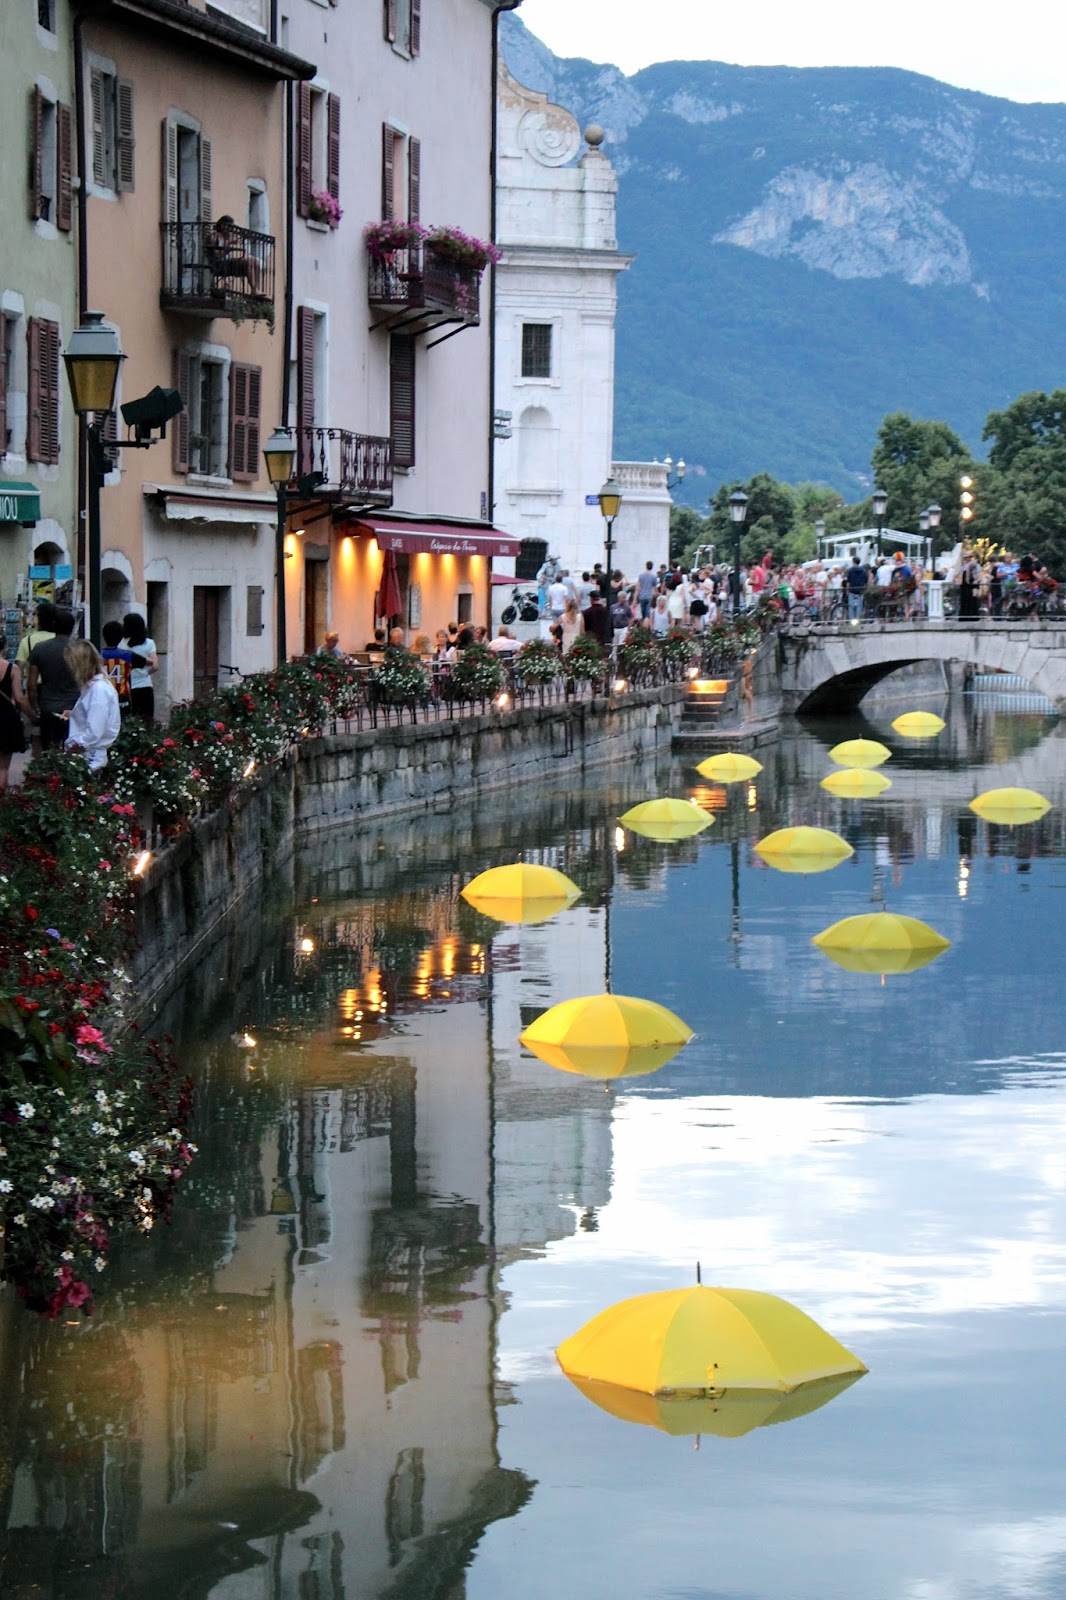 24 hours in Annecy - winding canals